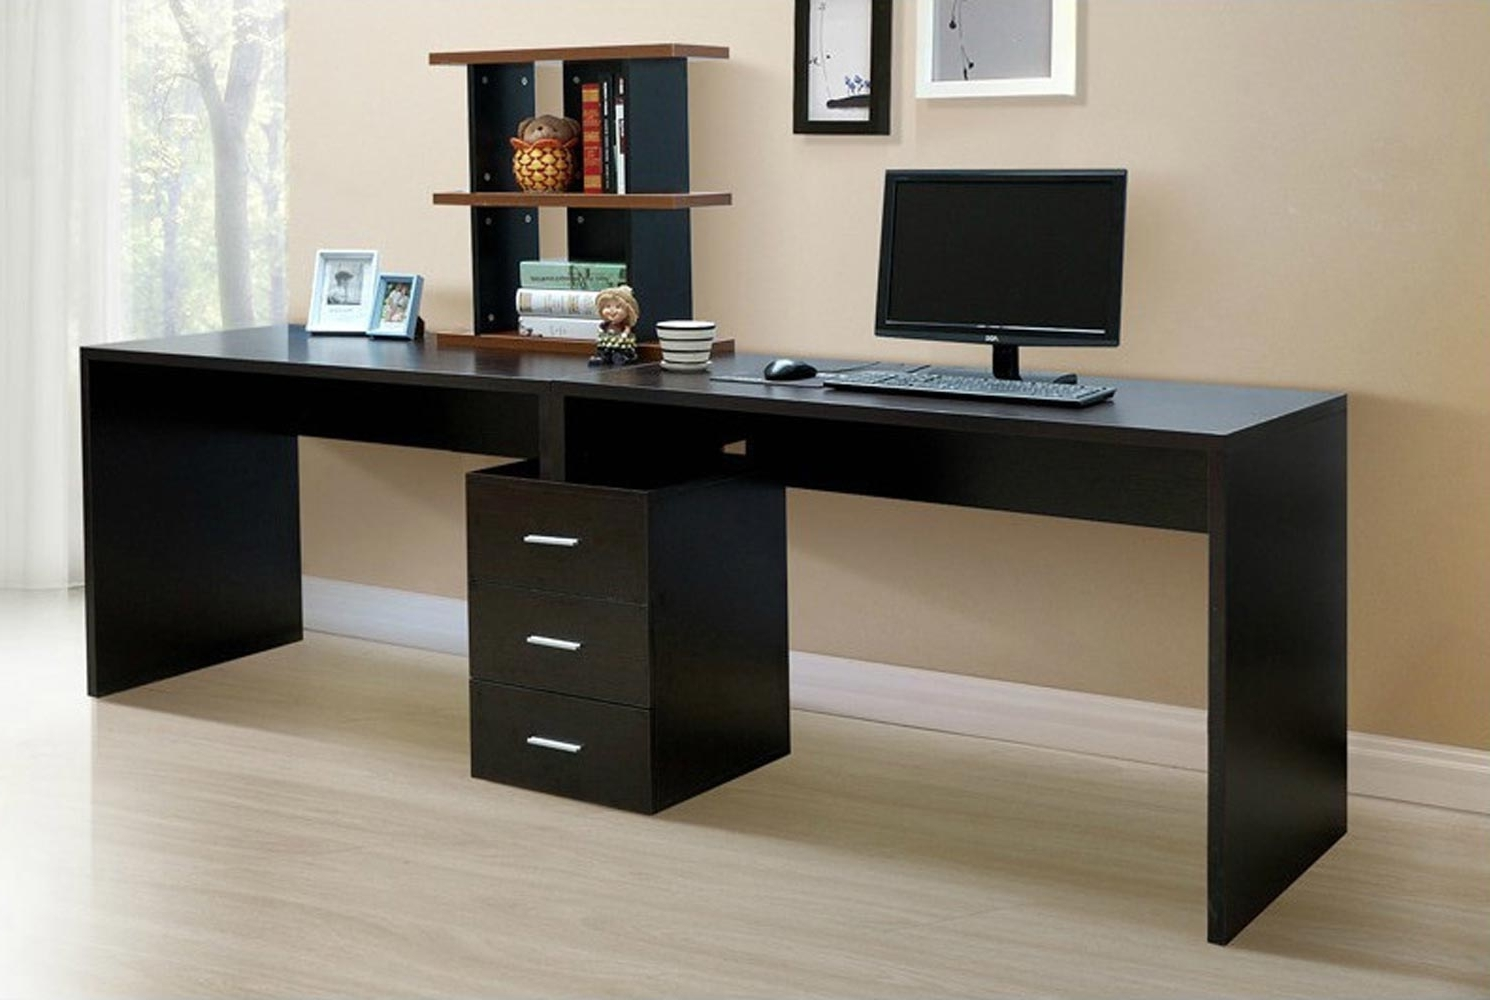 Preferred Modern Computer Desks Intended For Modern Computer Desk Plan – Thediapercake Home Trend (View 17 of 20)